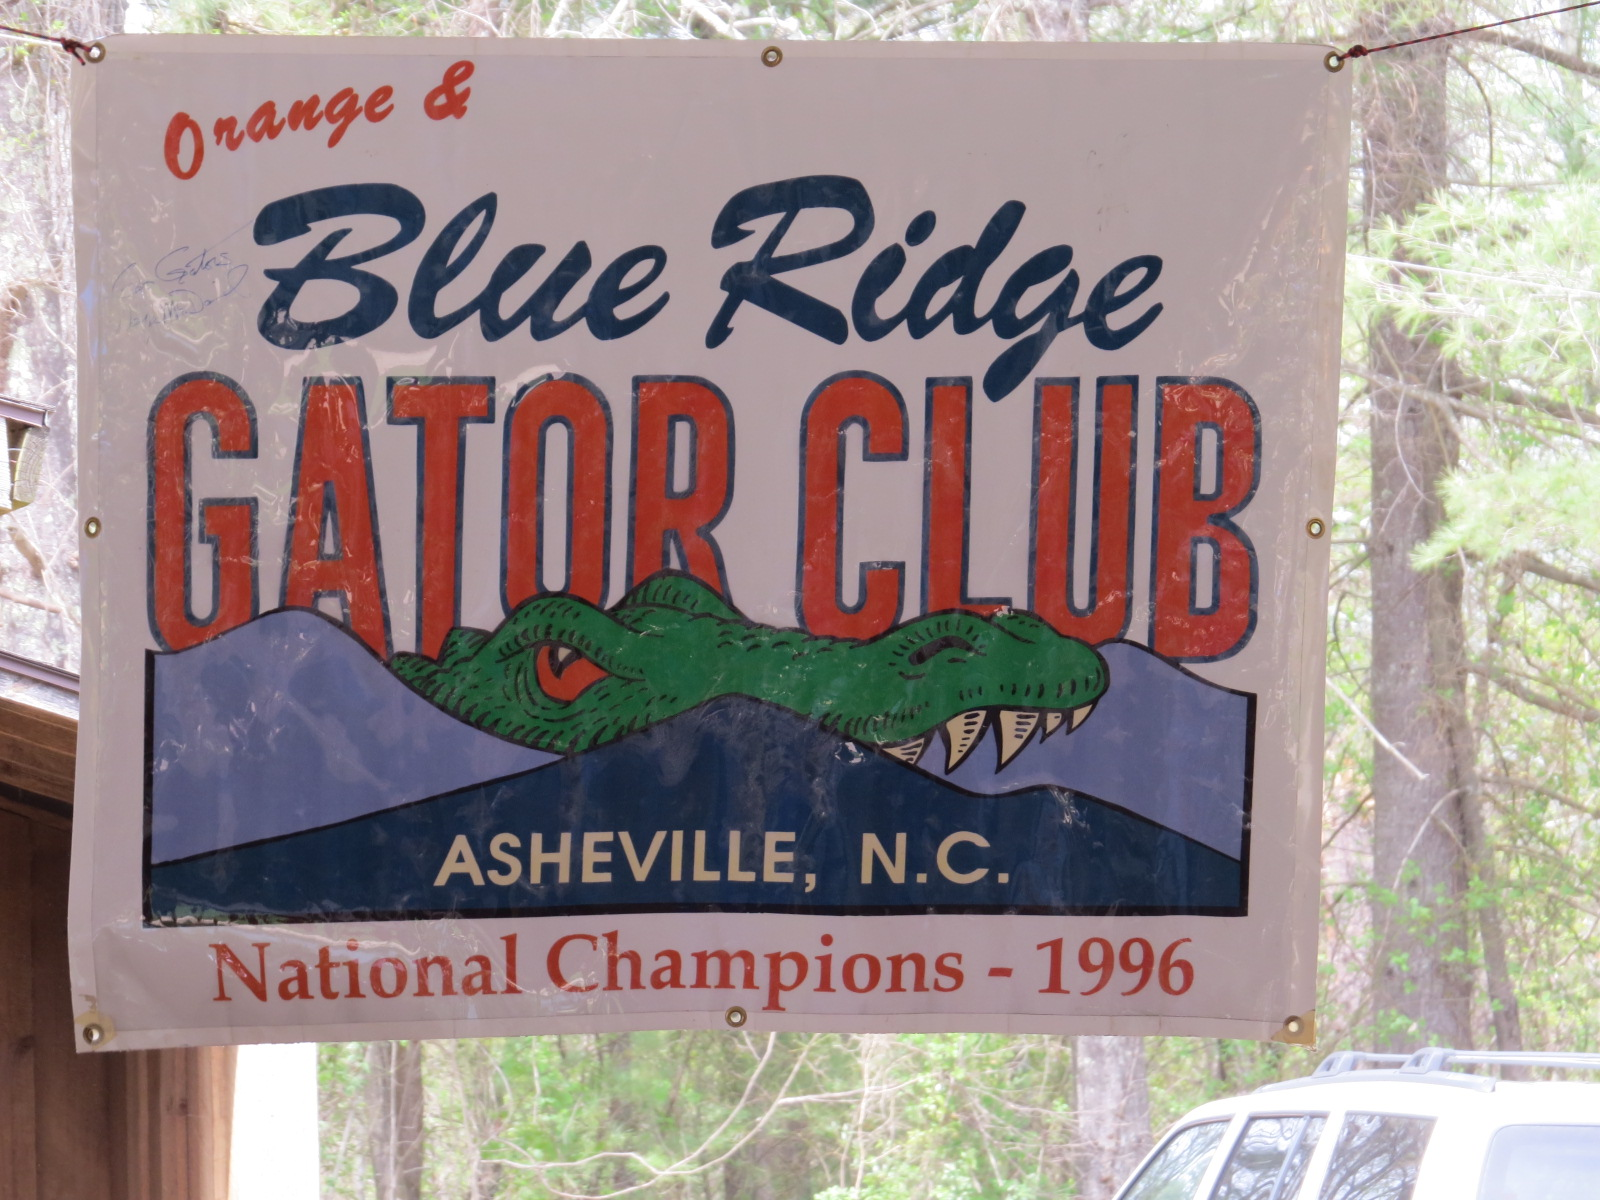 Blue Ridge Gator Club